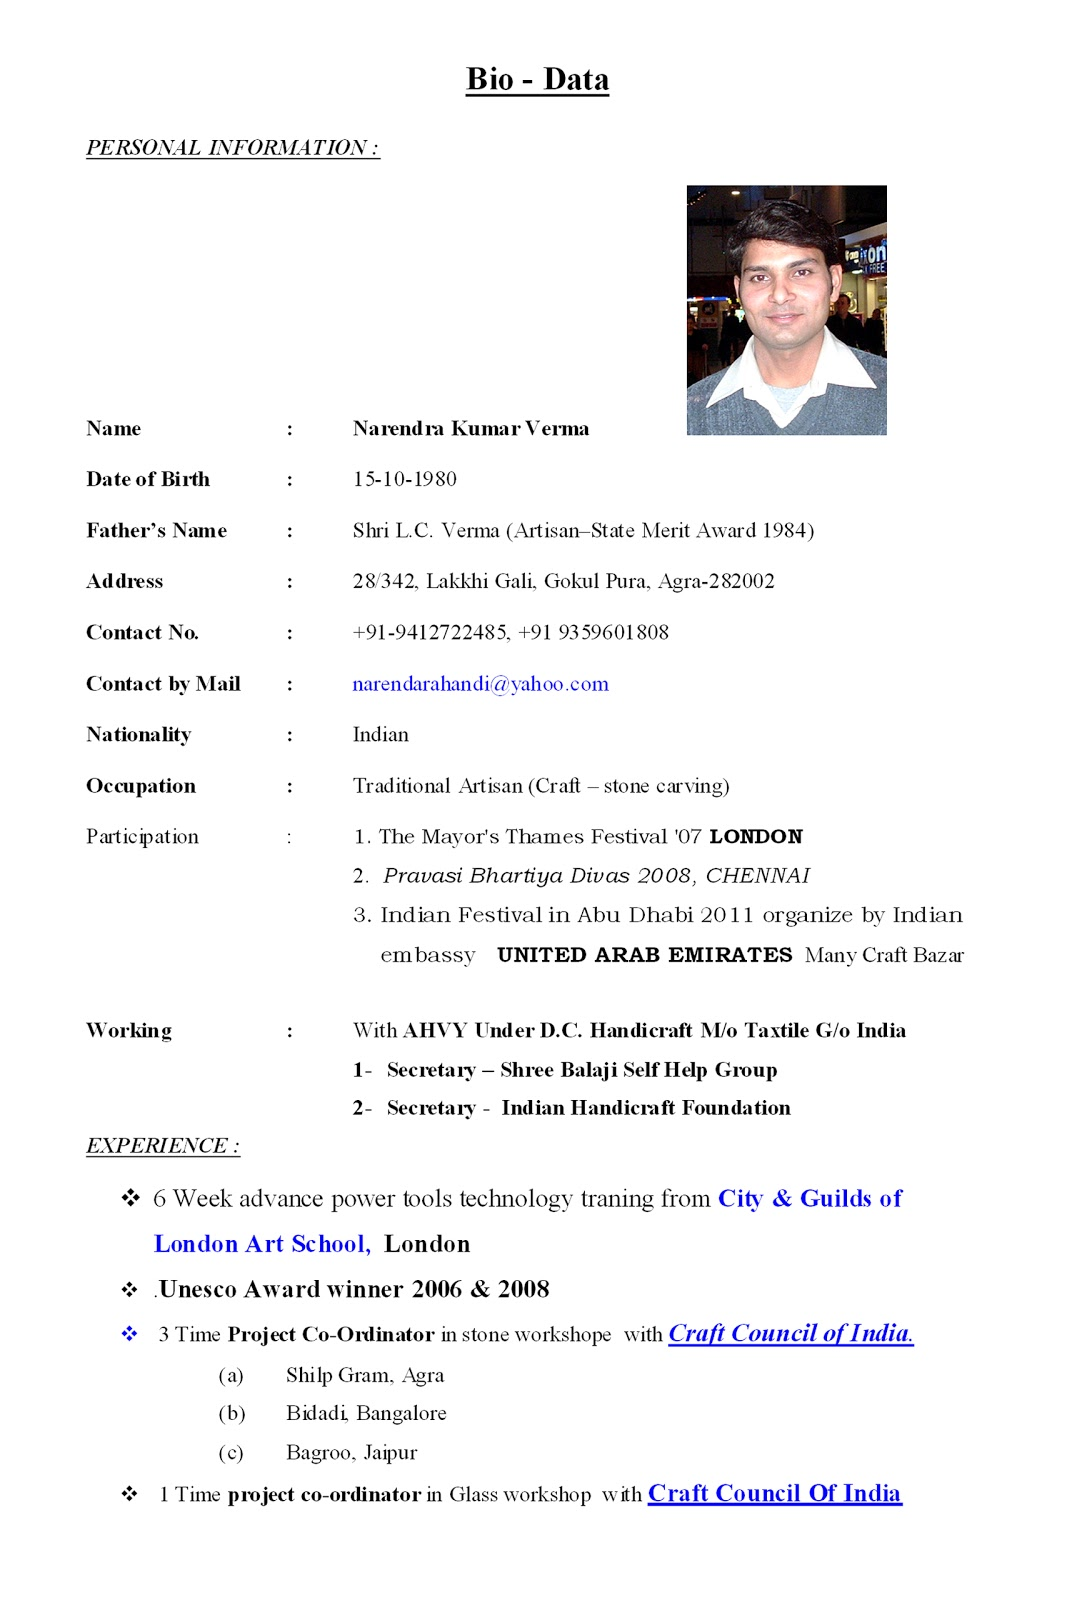 resume biodata sample - Template - Template resume biodata sample